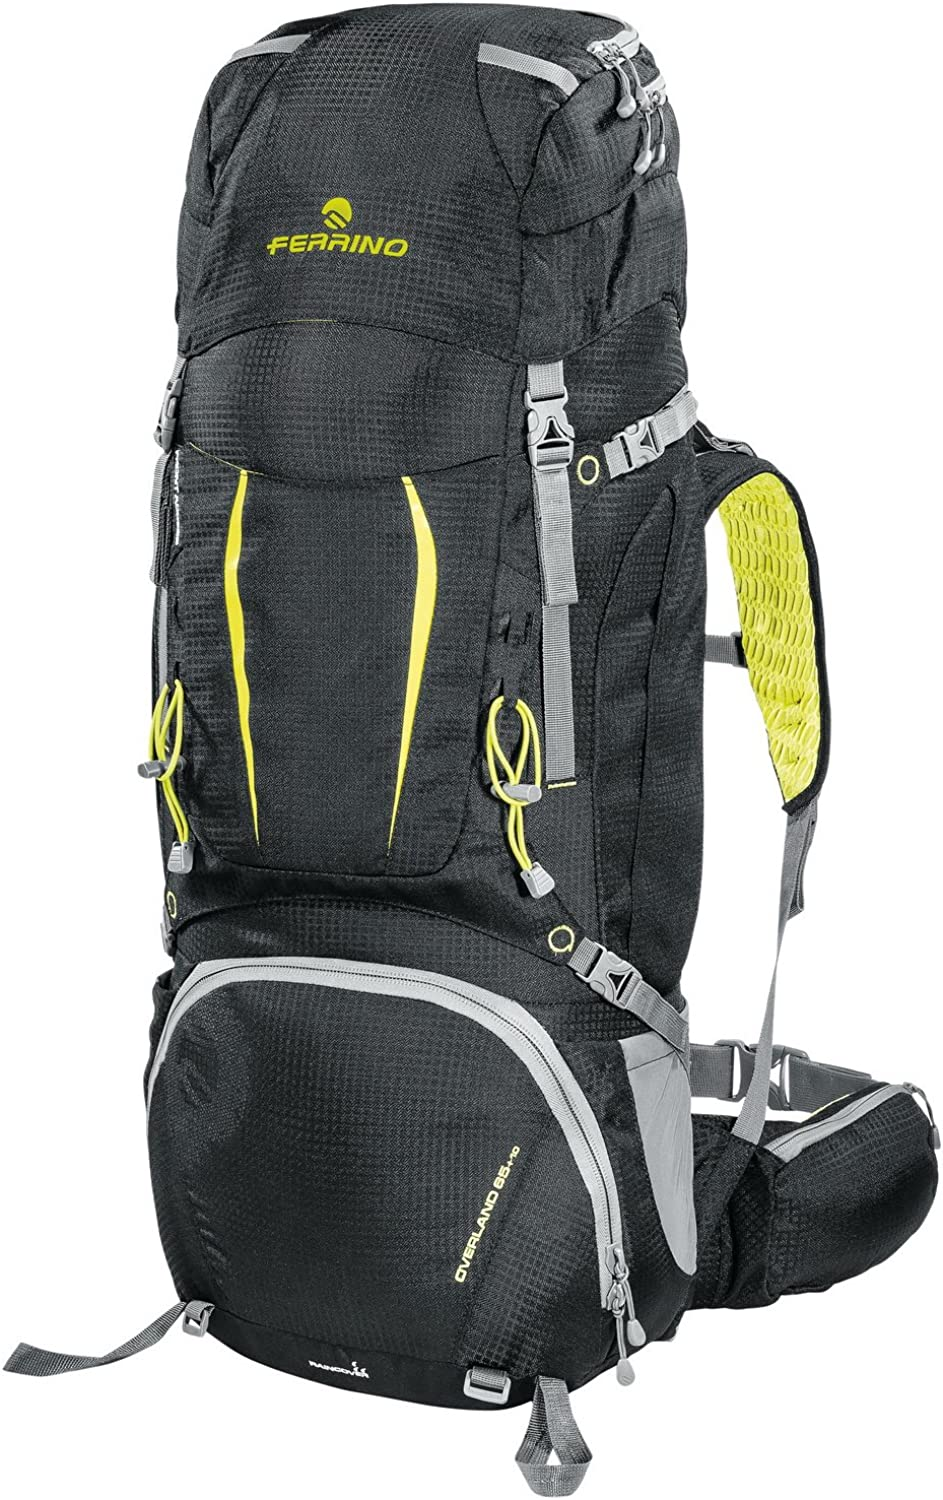 Ferrino Overland 65+10 Backpack, Black